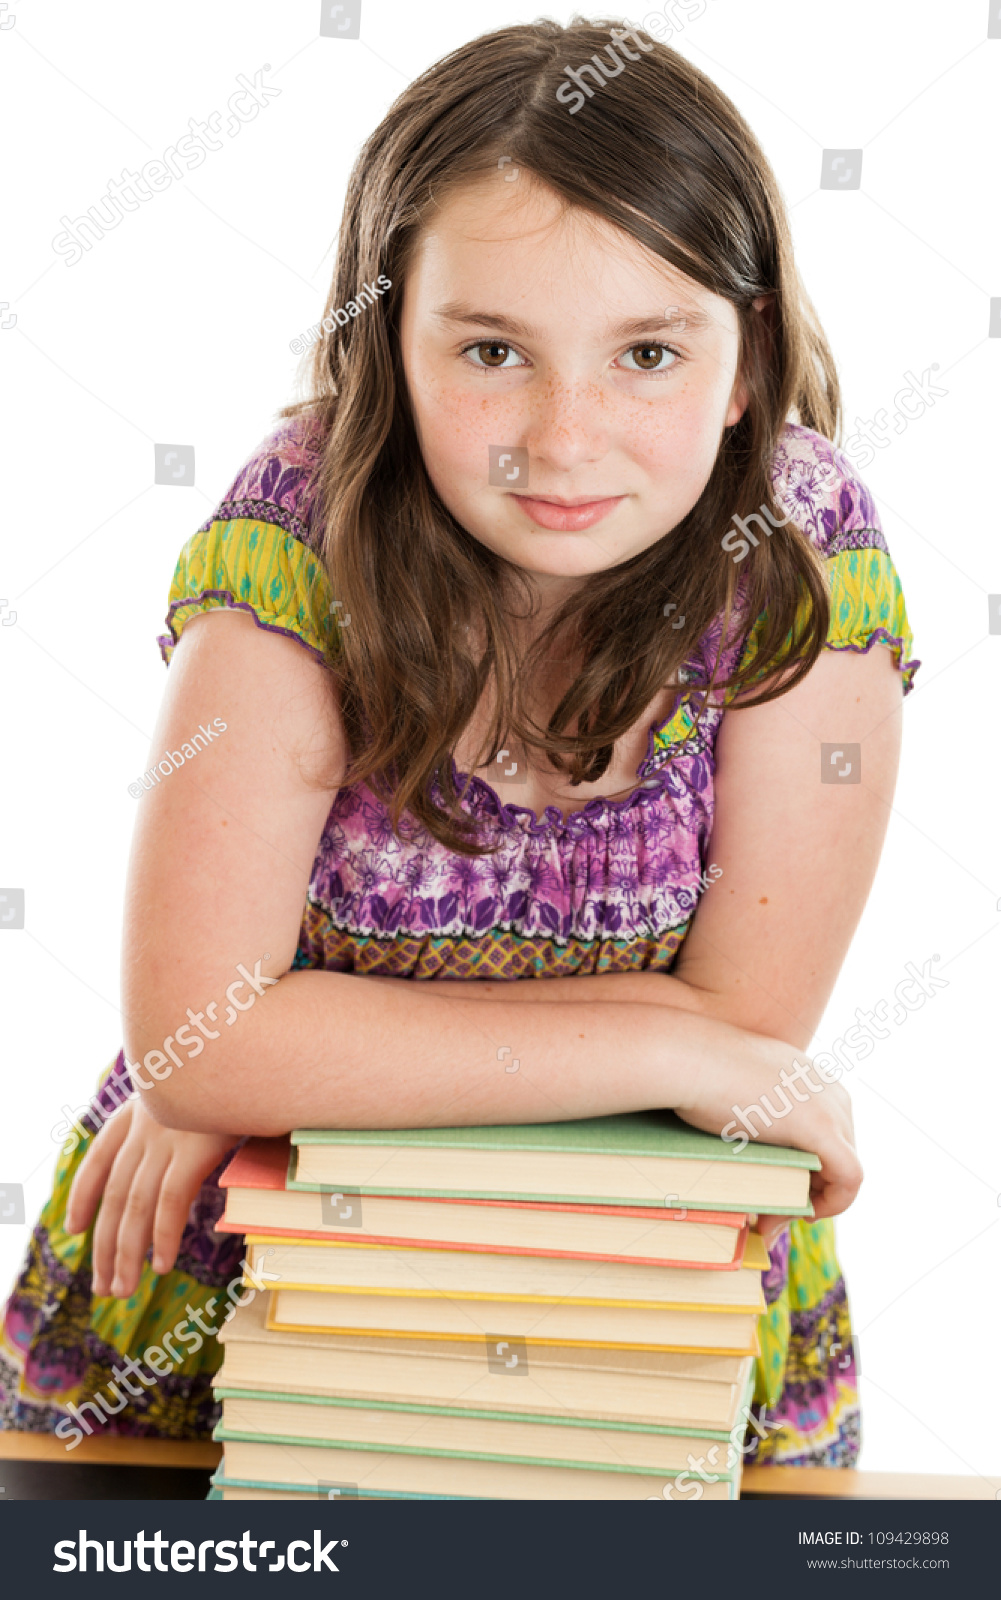 10 Cute Guys With Blonde Hair: Cute 10 Year Old Girl Leaning On A Stack Of Books Isolated